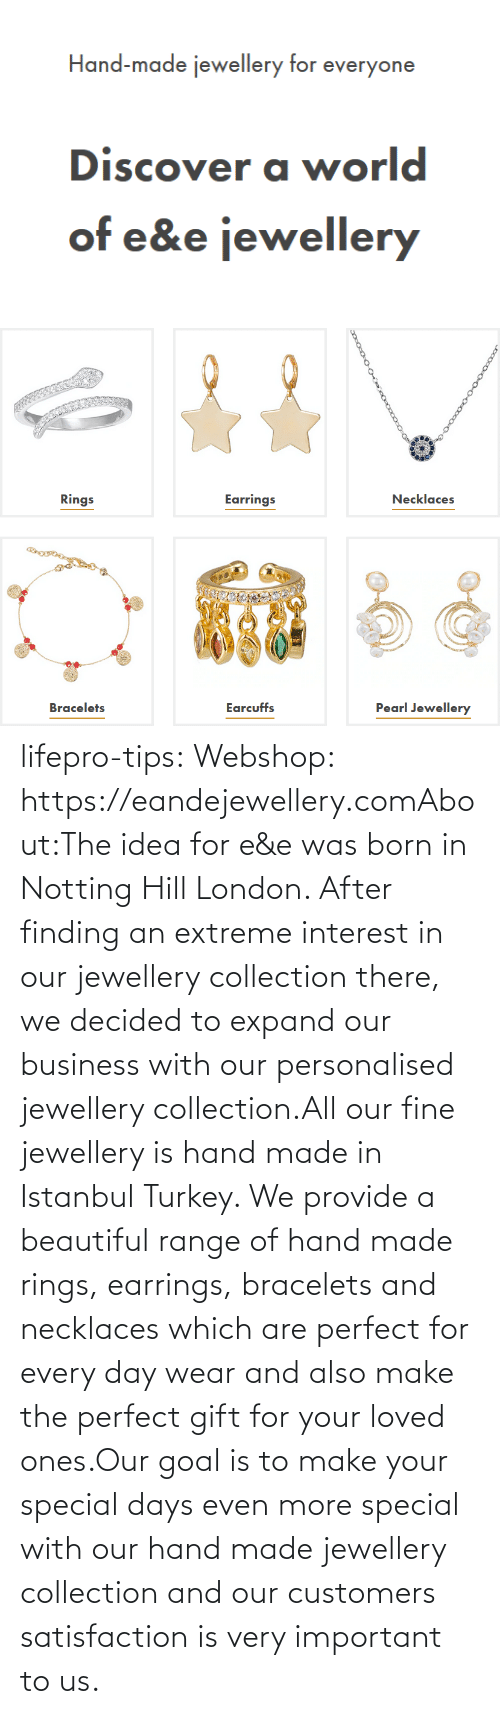 Was Born: lifepro-tips: Webshop: https://eandejewellery.comAbout:The idea for e&e was born in Notting Hill London. After  finding an extreme interest in our jewellery collection there, we  decided to expand our business with our personalised jewellery  collection.All our fine jewellery is hand made in Istanbul Turkey. We  provide a beautiful range of hand made rings, earrings, bracelets and  necklaces which are perfect for every day wear and also make the perfect  gift for your loved ones.Our goal is to make your special days even more special with  our hand made jewellery collection and our customers satisfaction is  very important to us.